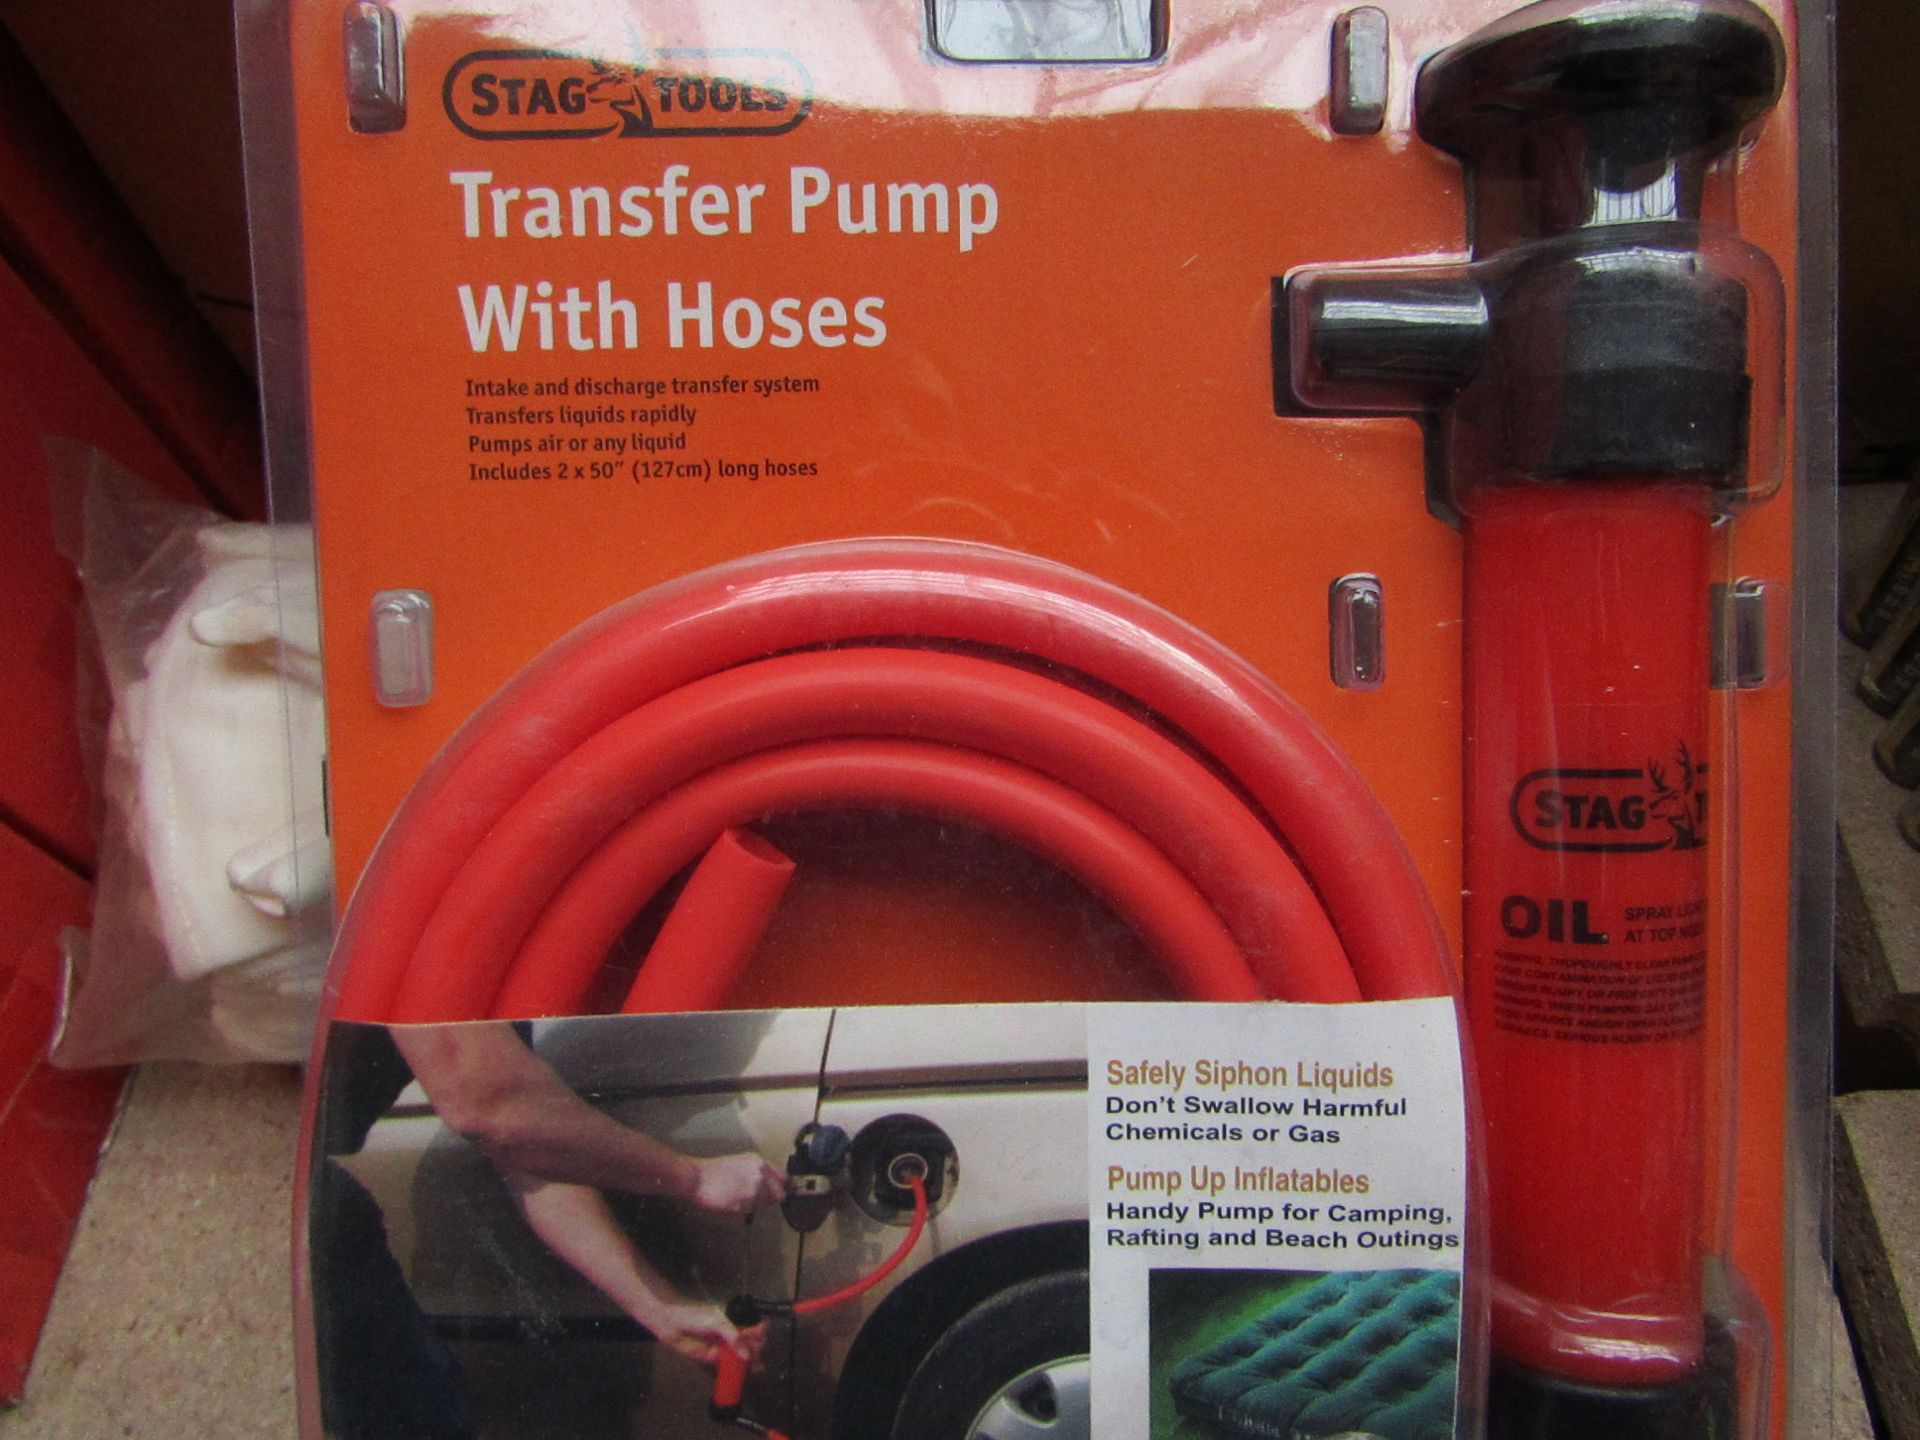 Lot 278 - Stag Tools Transfer pump with hoses, unused, the packaging may be dirty.